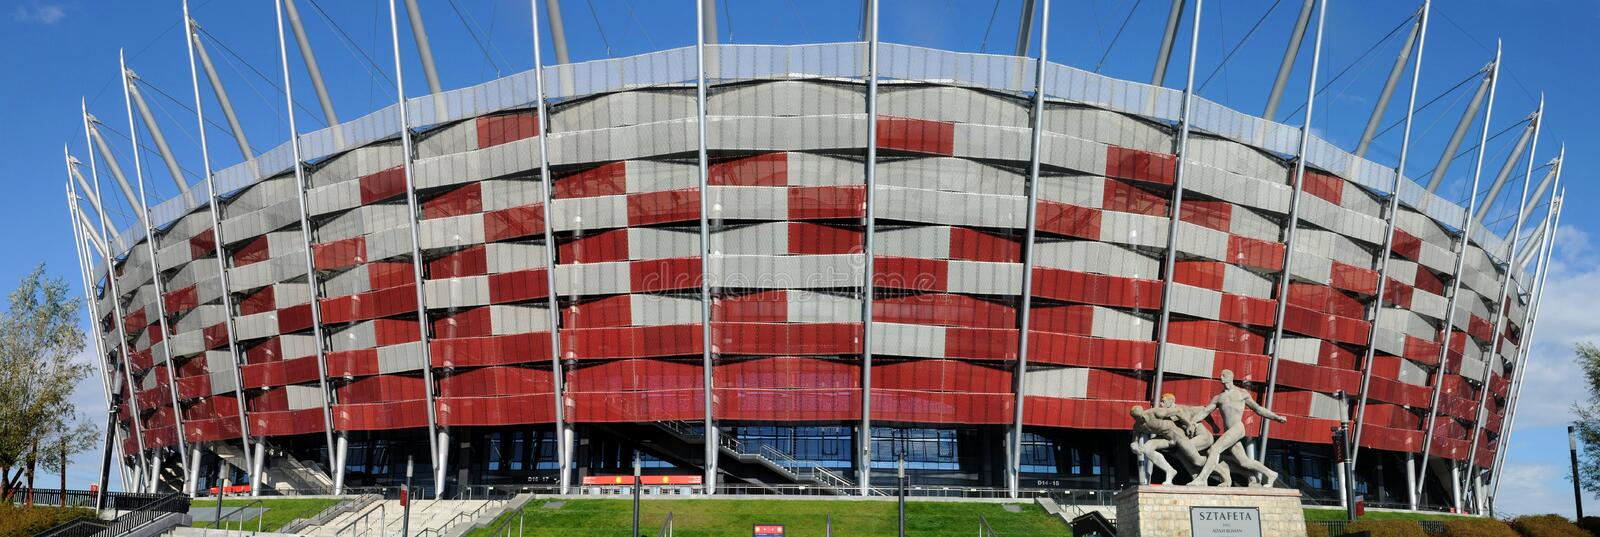 Ingang aan het Nationale Stadion in Warshau, Polen stock foto